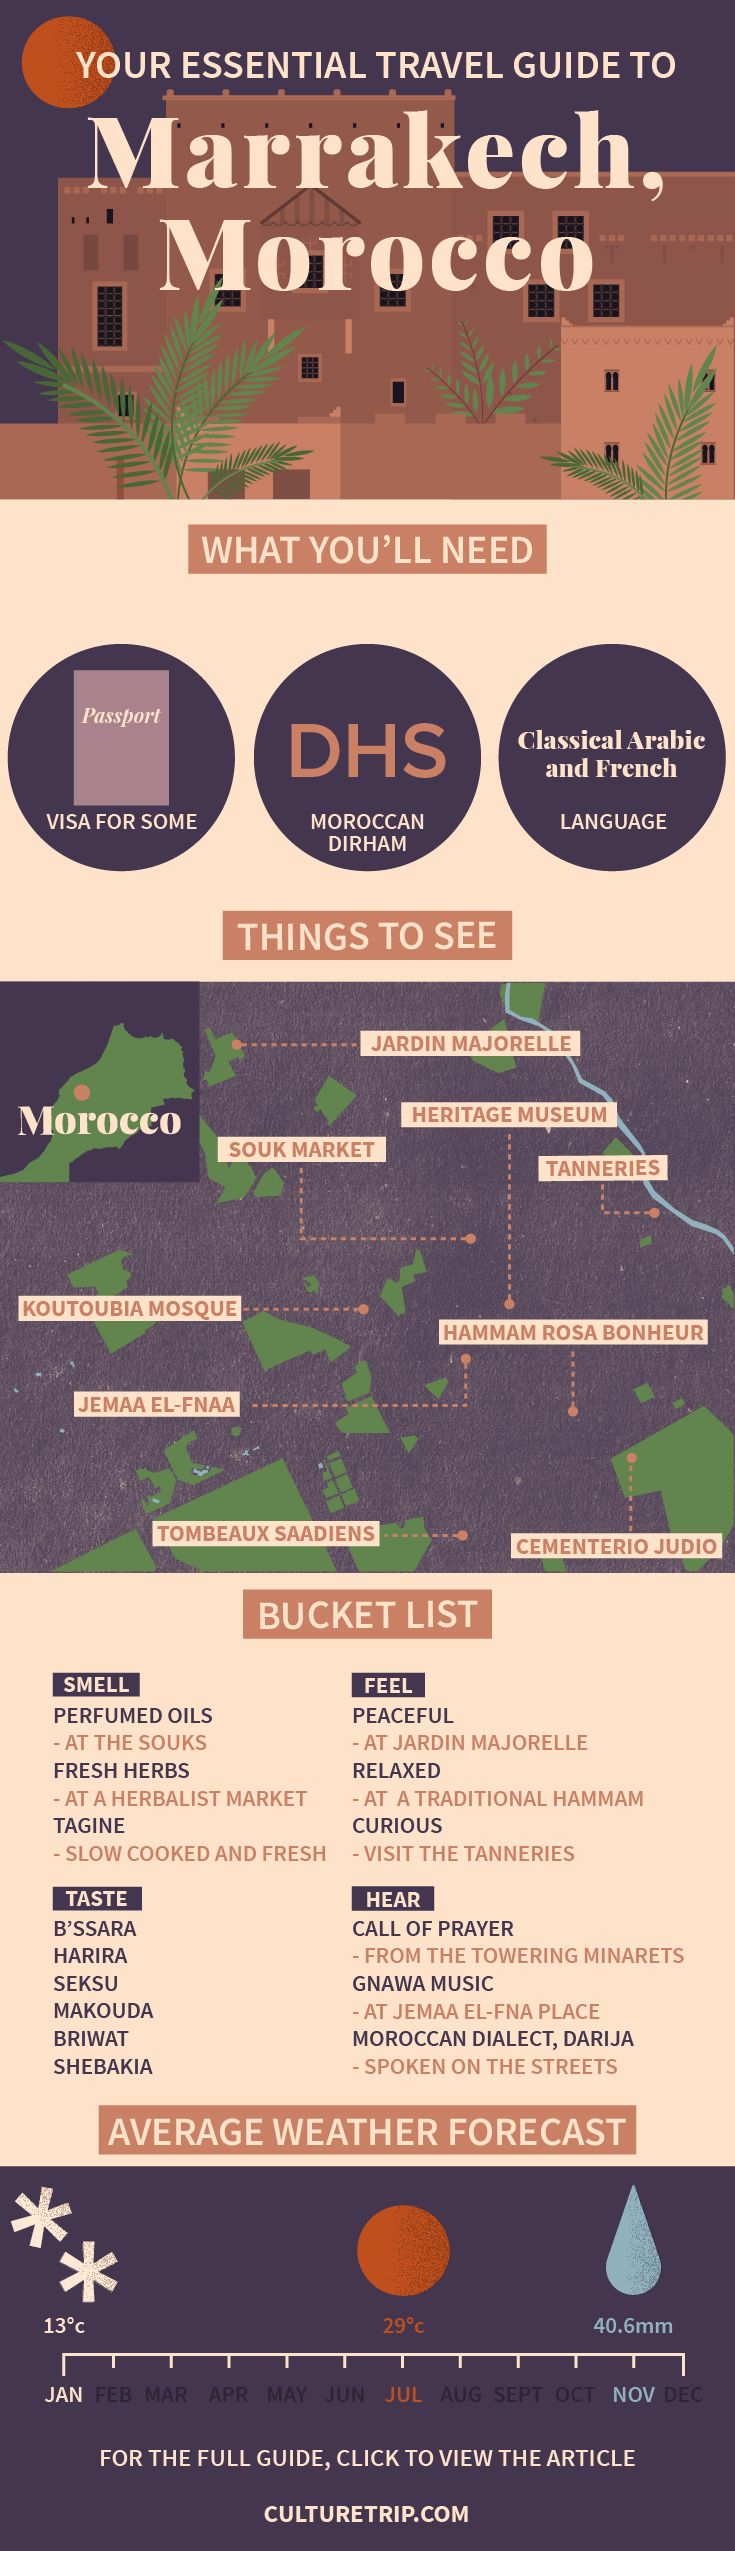 Your Essential Travel Guide to Marrakech (Infographic) | Marrakech, Morocco, Africa, wanderlust, food, coffee, Travel, Map, where to eat, where to go, bucket list, adventure, illustration